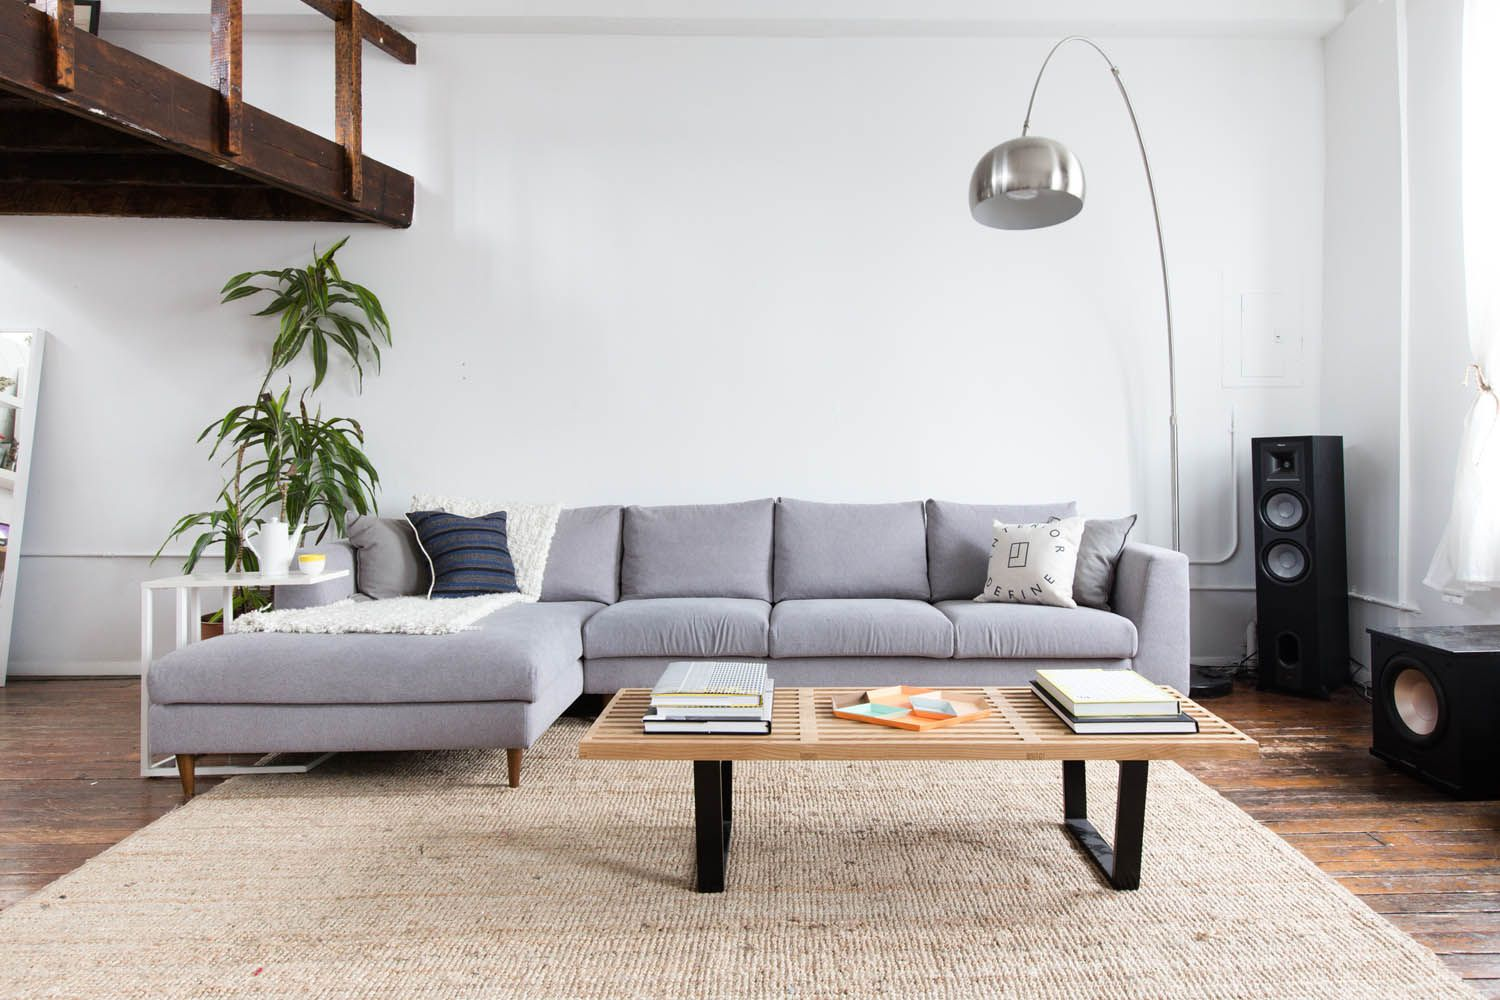 Attirant How To Buy A Sofa Online | Rue